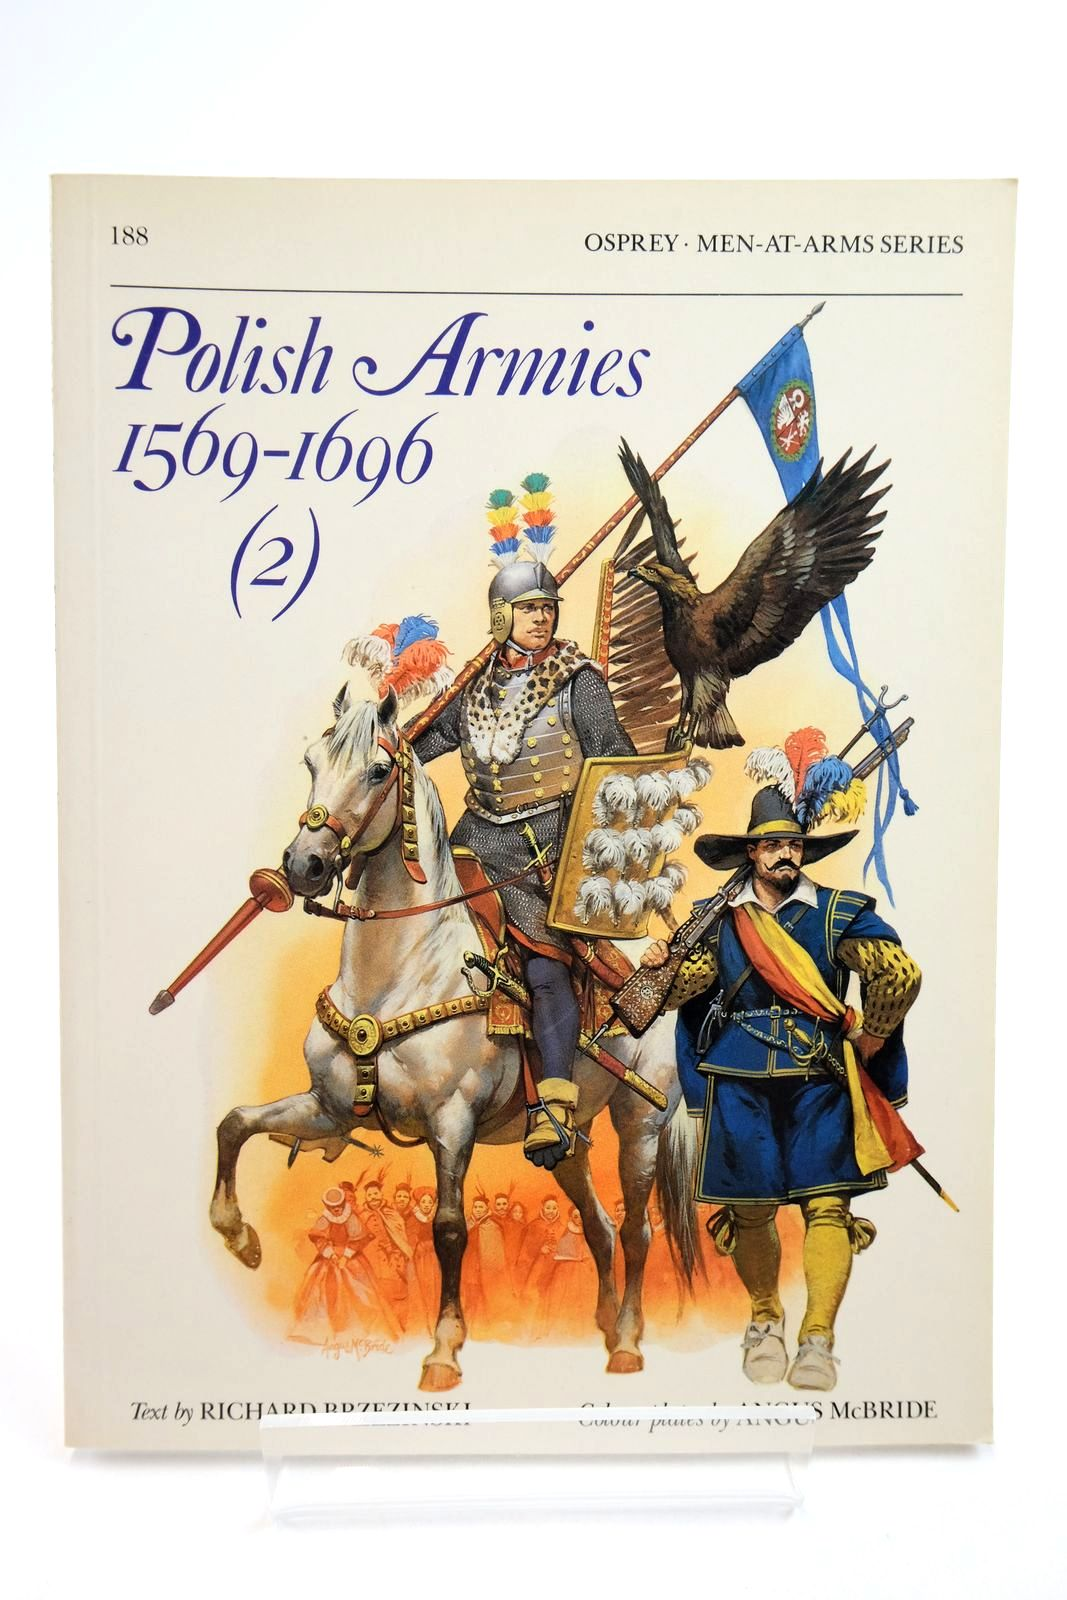 Photo of POLISH ARMIES 1569-1696 (2) (MEN-AT-ARMS) written by Brzezinski, Richard illustrated by McBride, Angus published by Osprey Publishing (STOCK CODE: 2134752)  for sale by Stella & Rose's Books